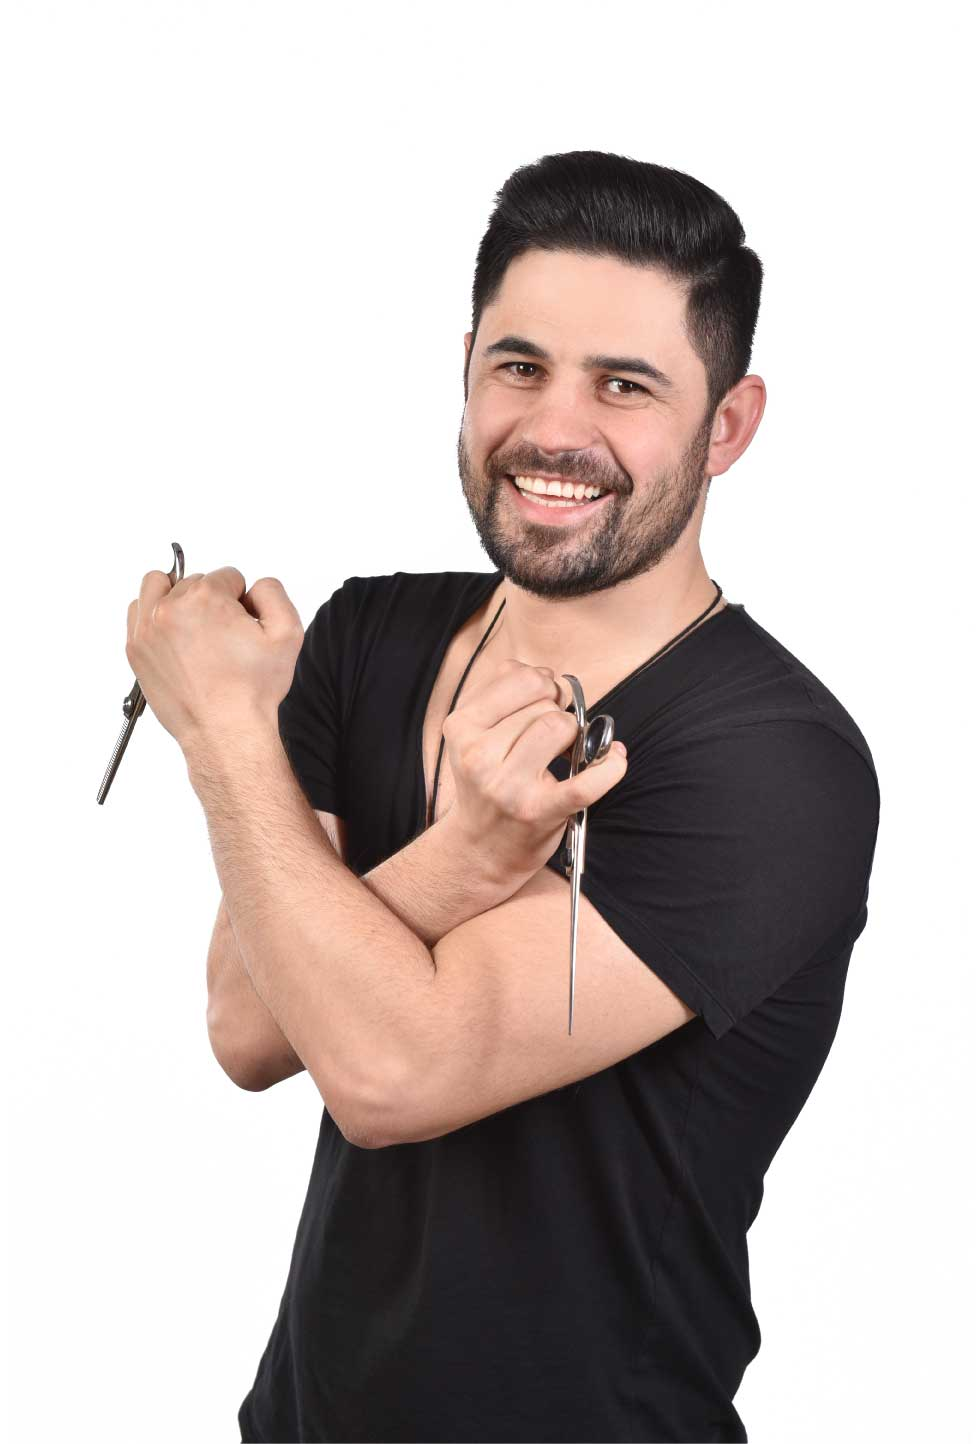 1CONSTANTIN-GEORGE---SENIOR-HAIRSTYLIST-TRAINER-REVLON